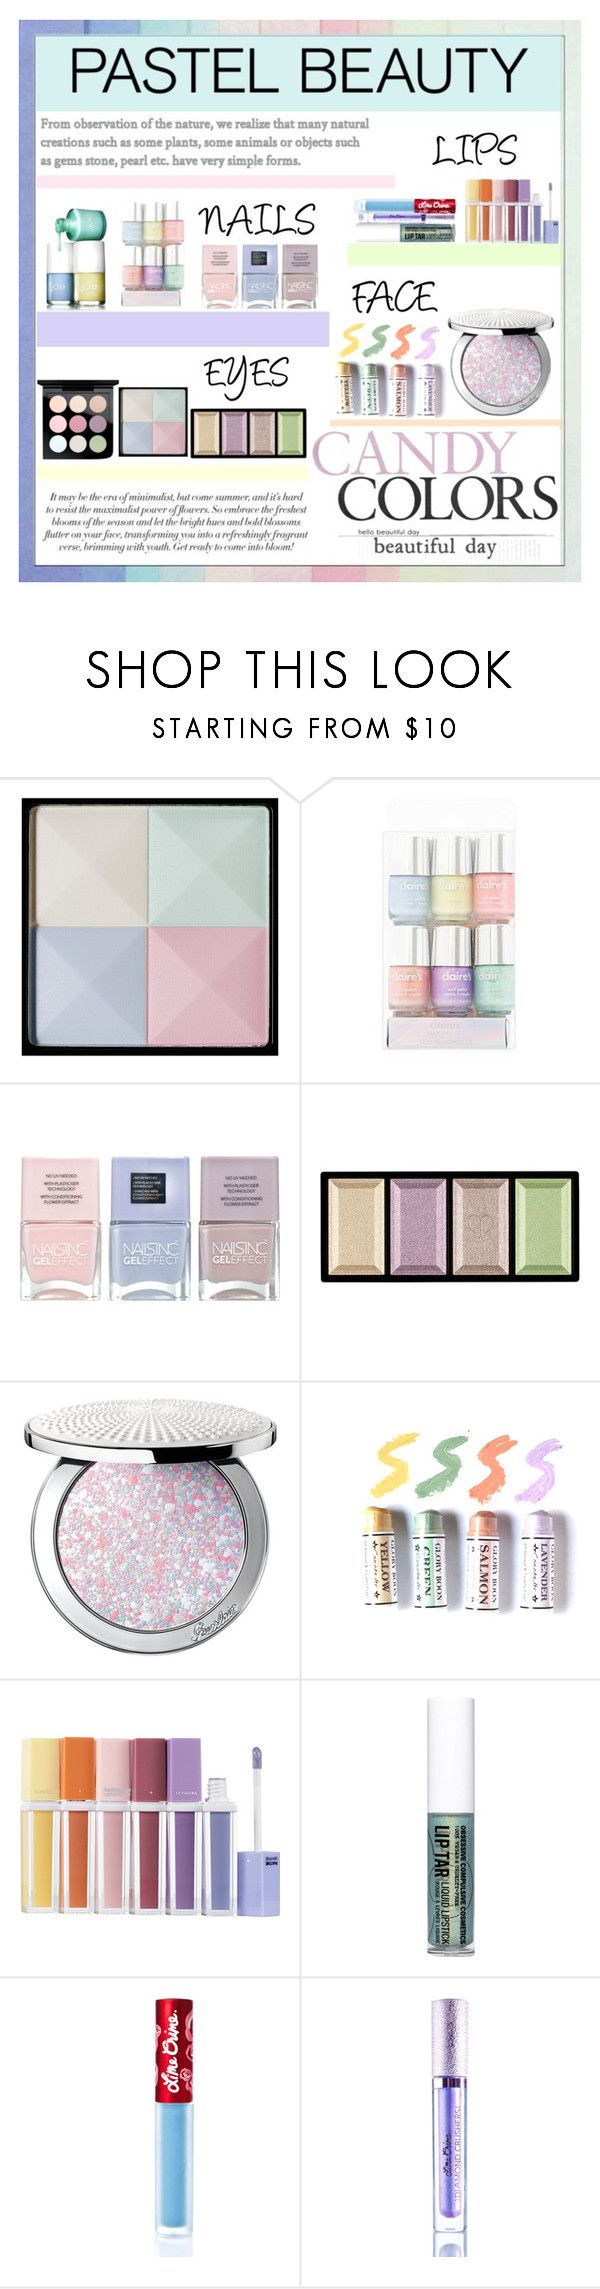 """""""Pastel Makeup"""" by lady-madhatter ❤ liked on Polyvore featuring beauty, Joe Fresh, Givenchy, Nails Inc., Clé de Peau Beauté, Guerlain, Sephora Collection, Obsessive Compulsive Cosmetics, Lime Crime and MAC Cosmetics"""